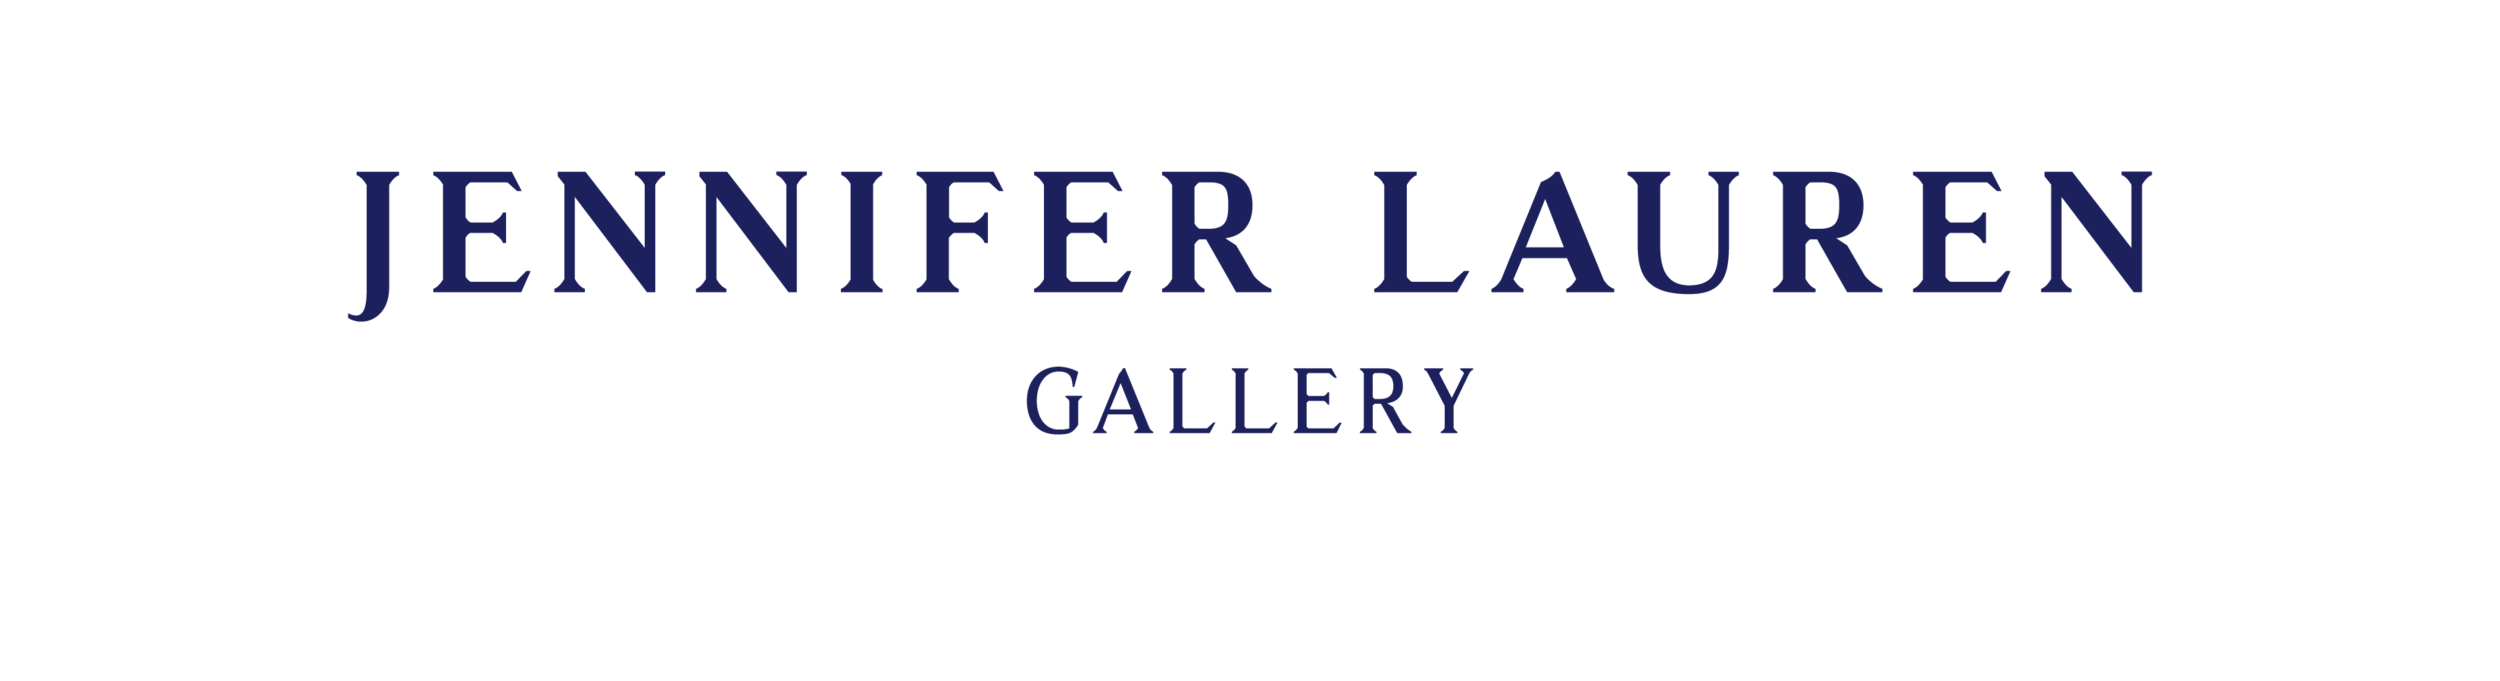 Jennifer Lauren Gallery